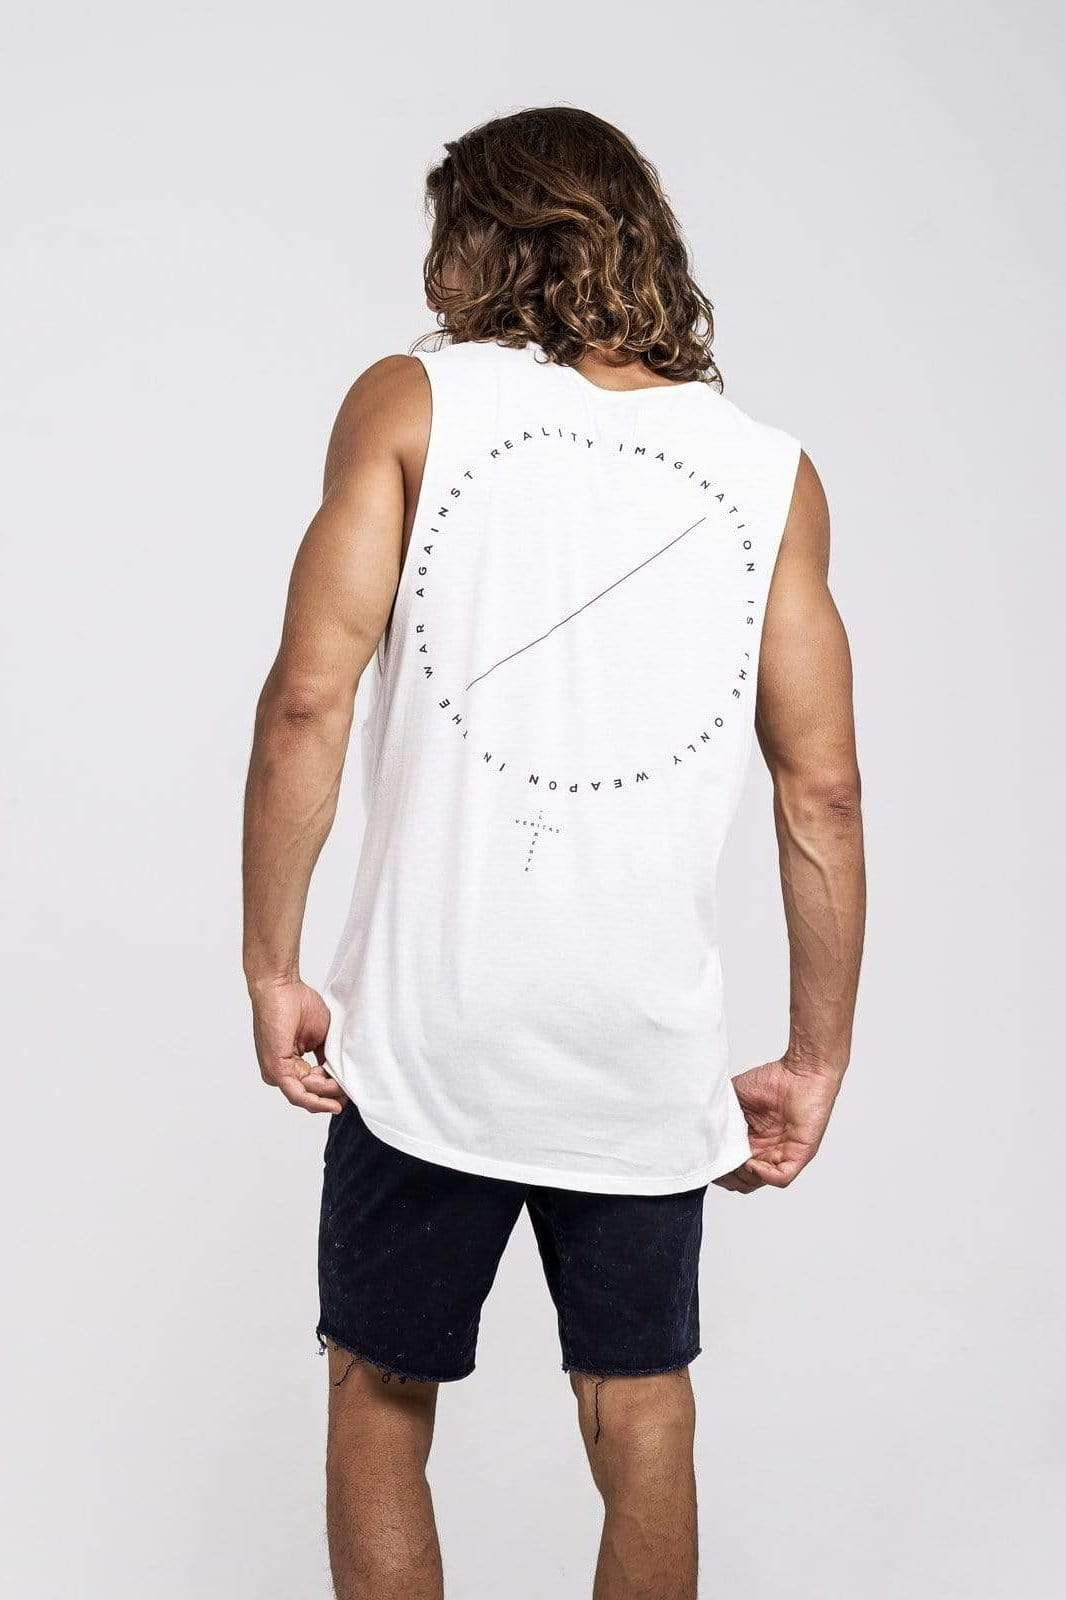 Lvm Imagination Reality - Mens Muscle Tank - VERITAS & LIBERTE